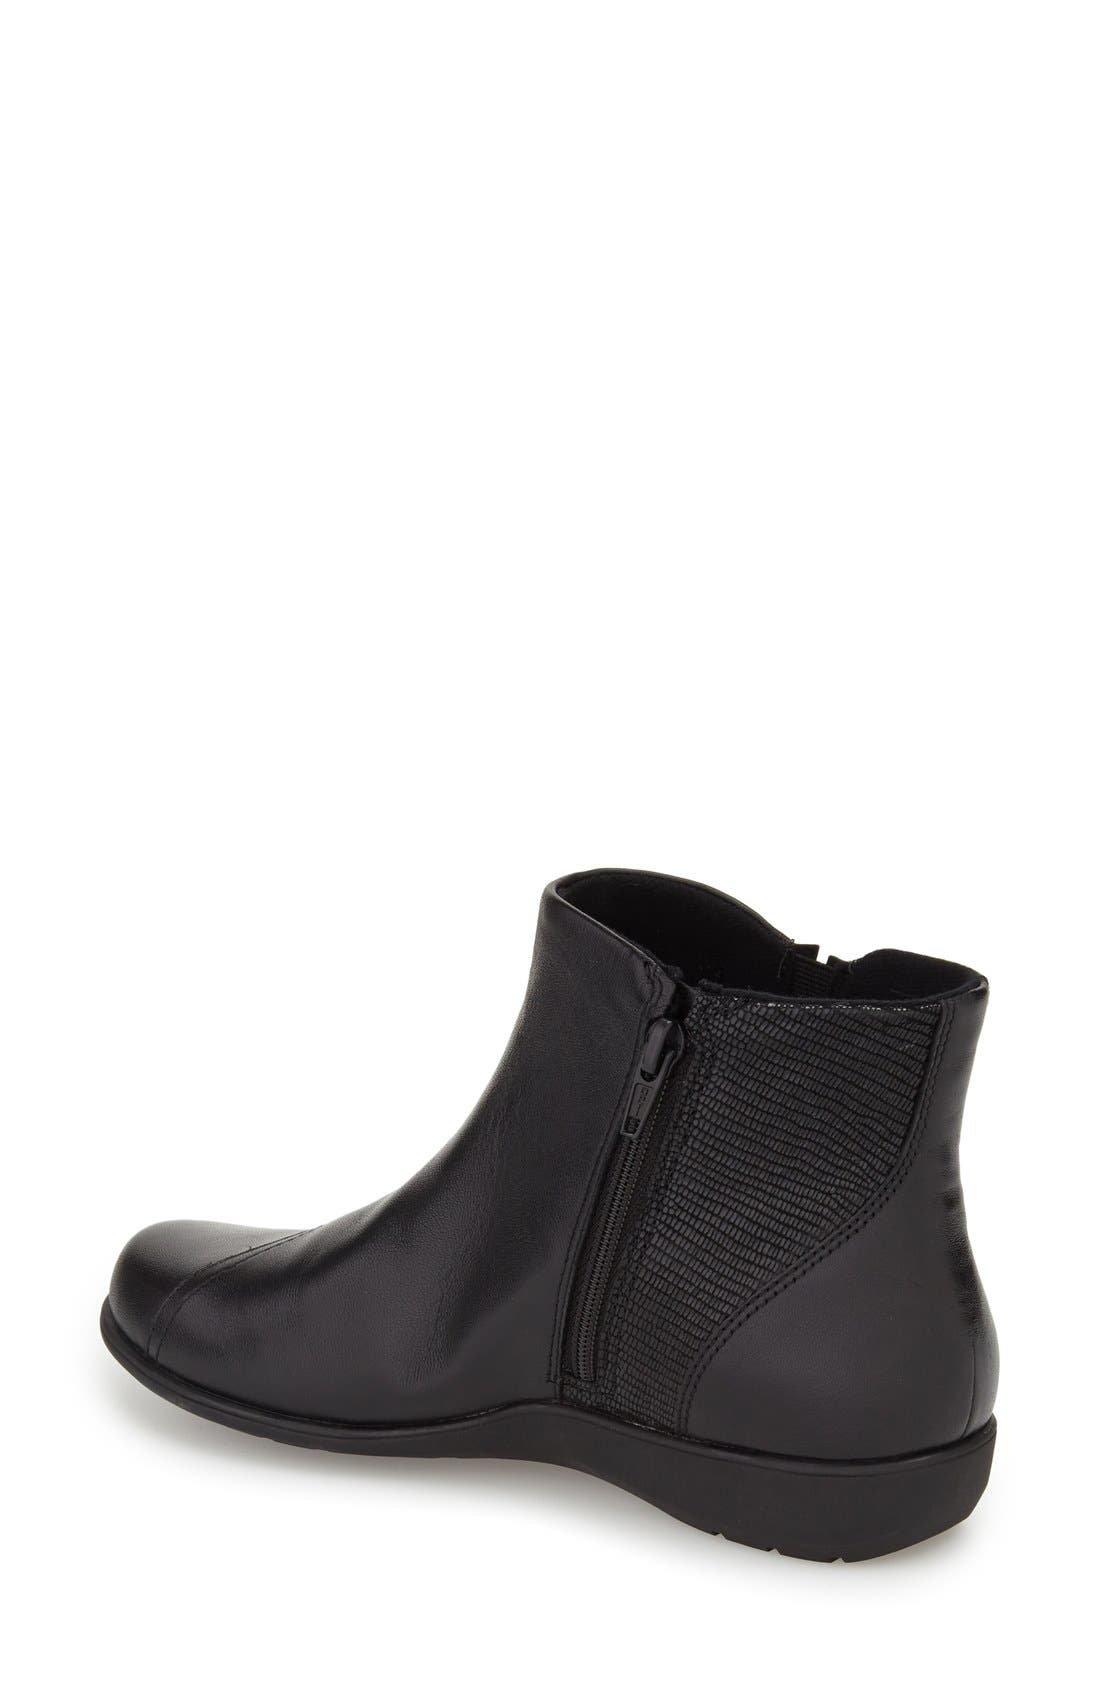 'Anstice' Wedge Bootie,                             Alternate thumbnail 2, color,                             001